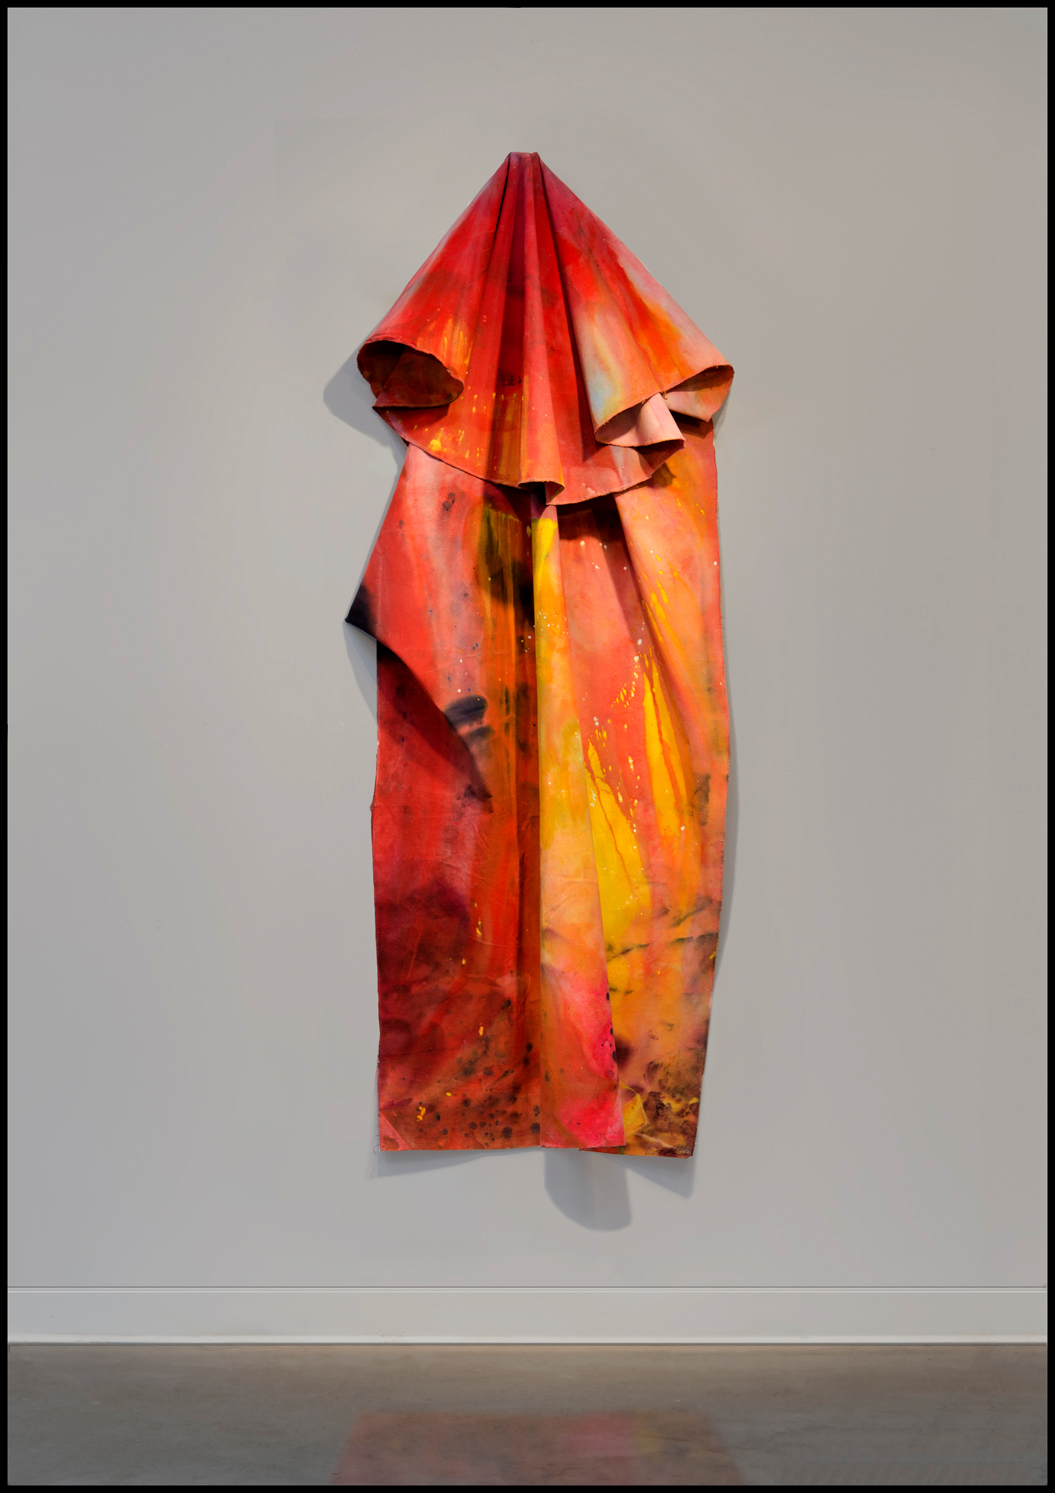 <p>Installation view of Sam Gilliam's <em>One Situation</em> included in the 2012 exhibition Drip, Drape, Draft.</p>